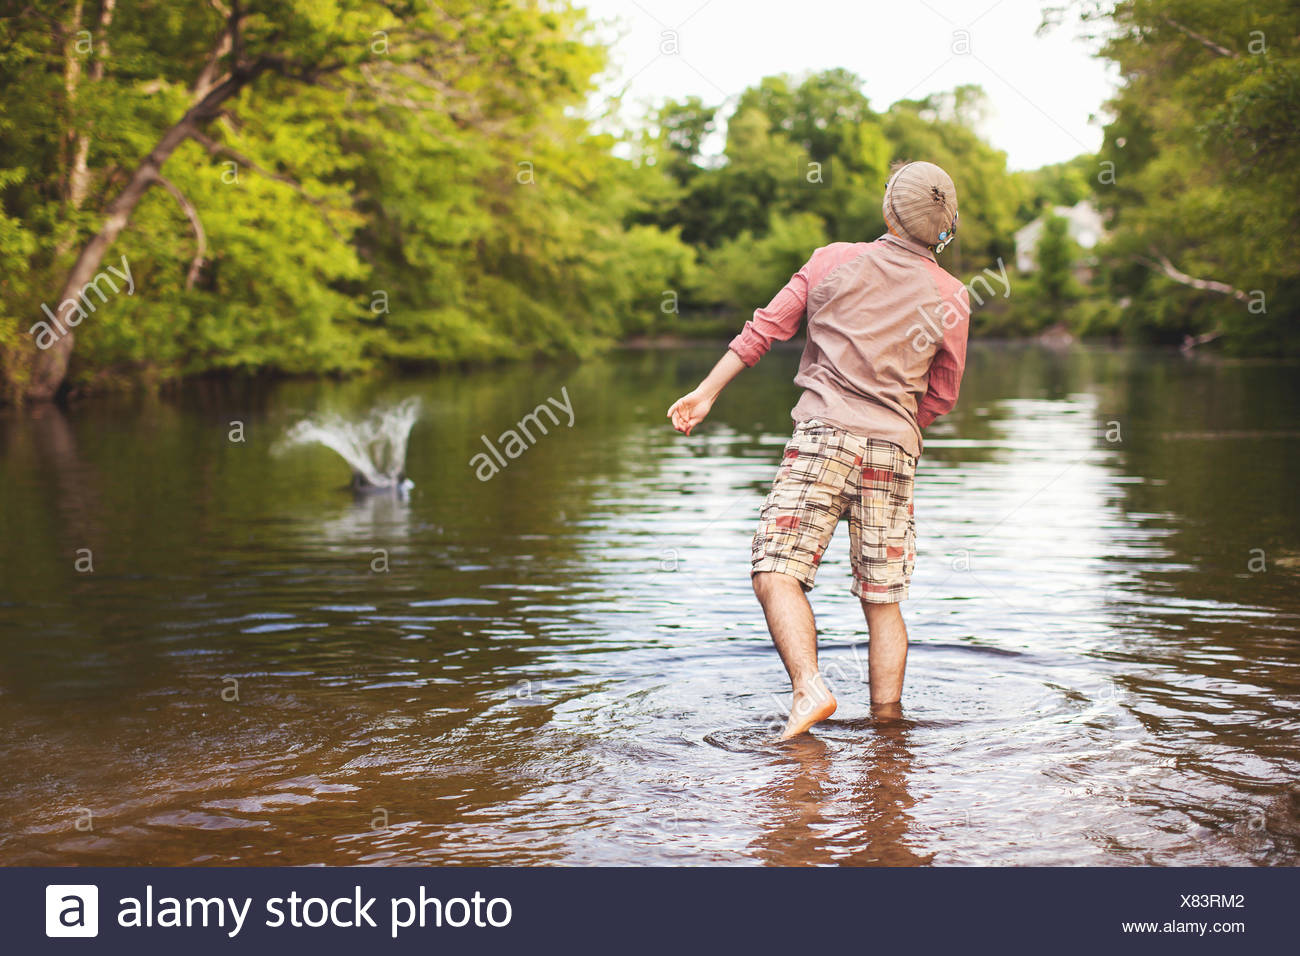 Young man throwing stone into lake - Stock Image